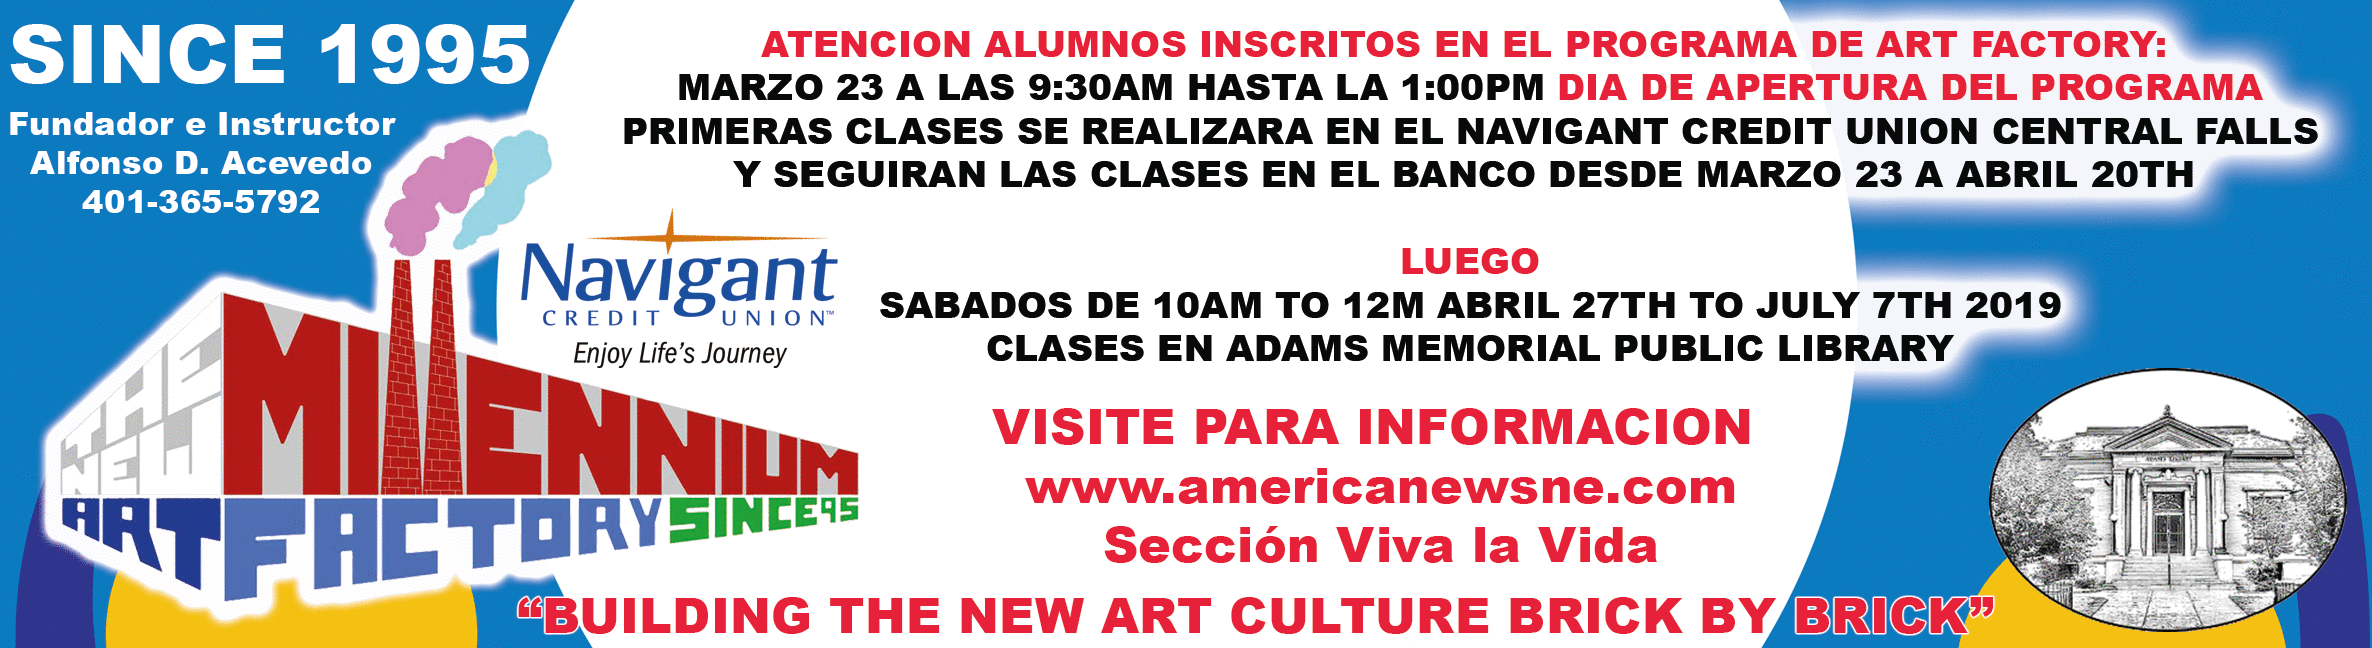 Art classes at the New Millennium Art Factory begin soon!